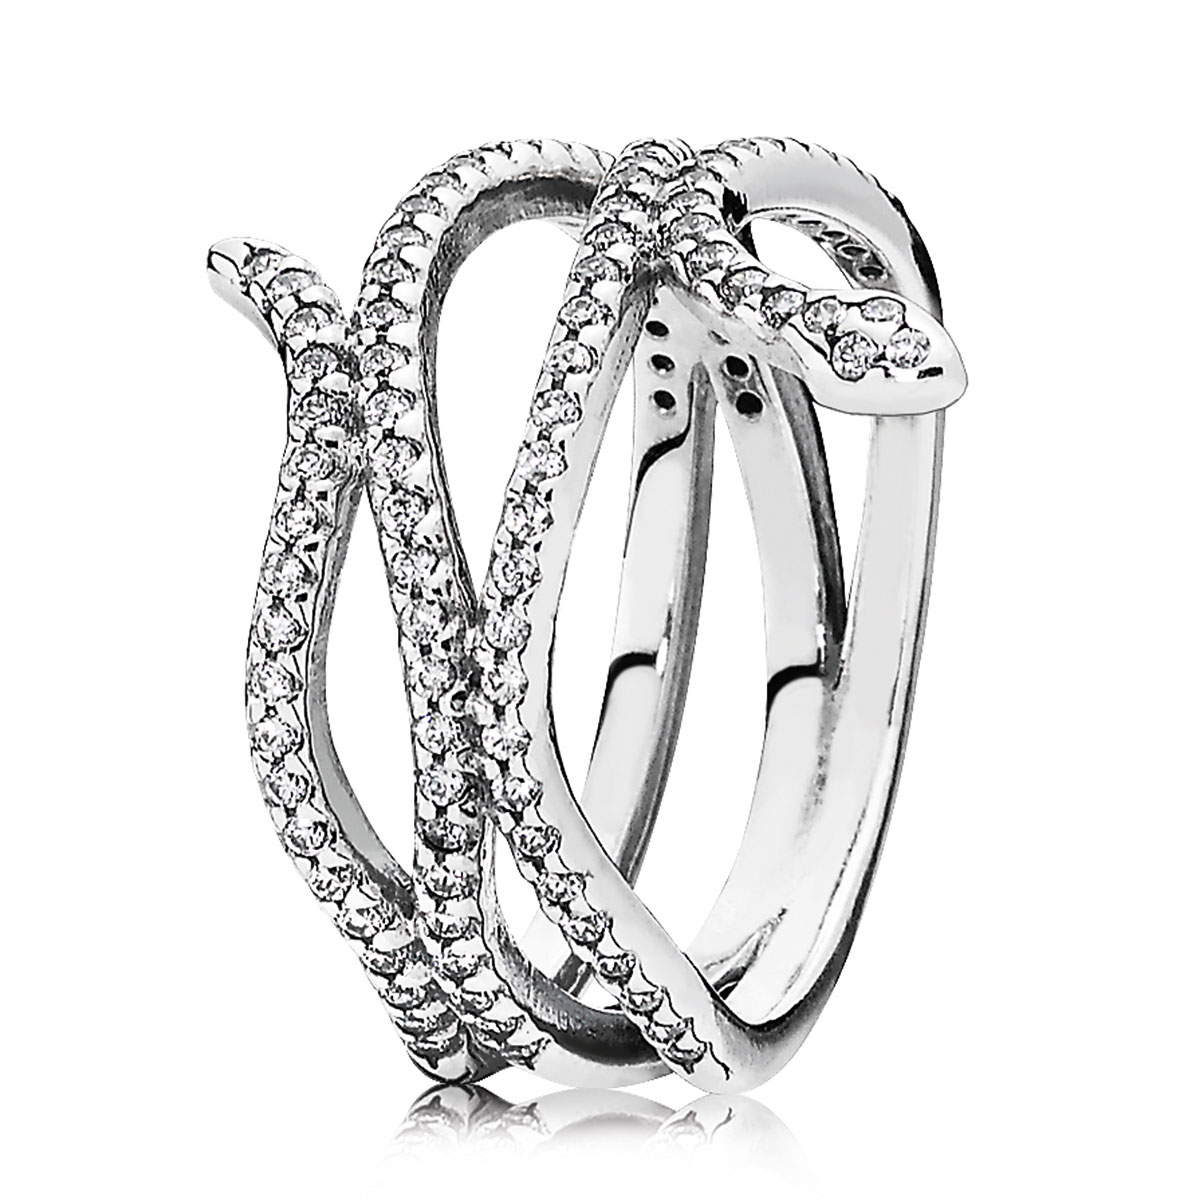 PANDORA Swirling Snake with Clear CZ Ring RETIRED